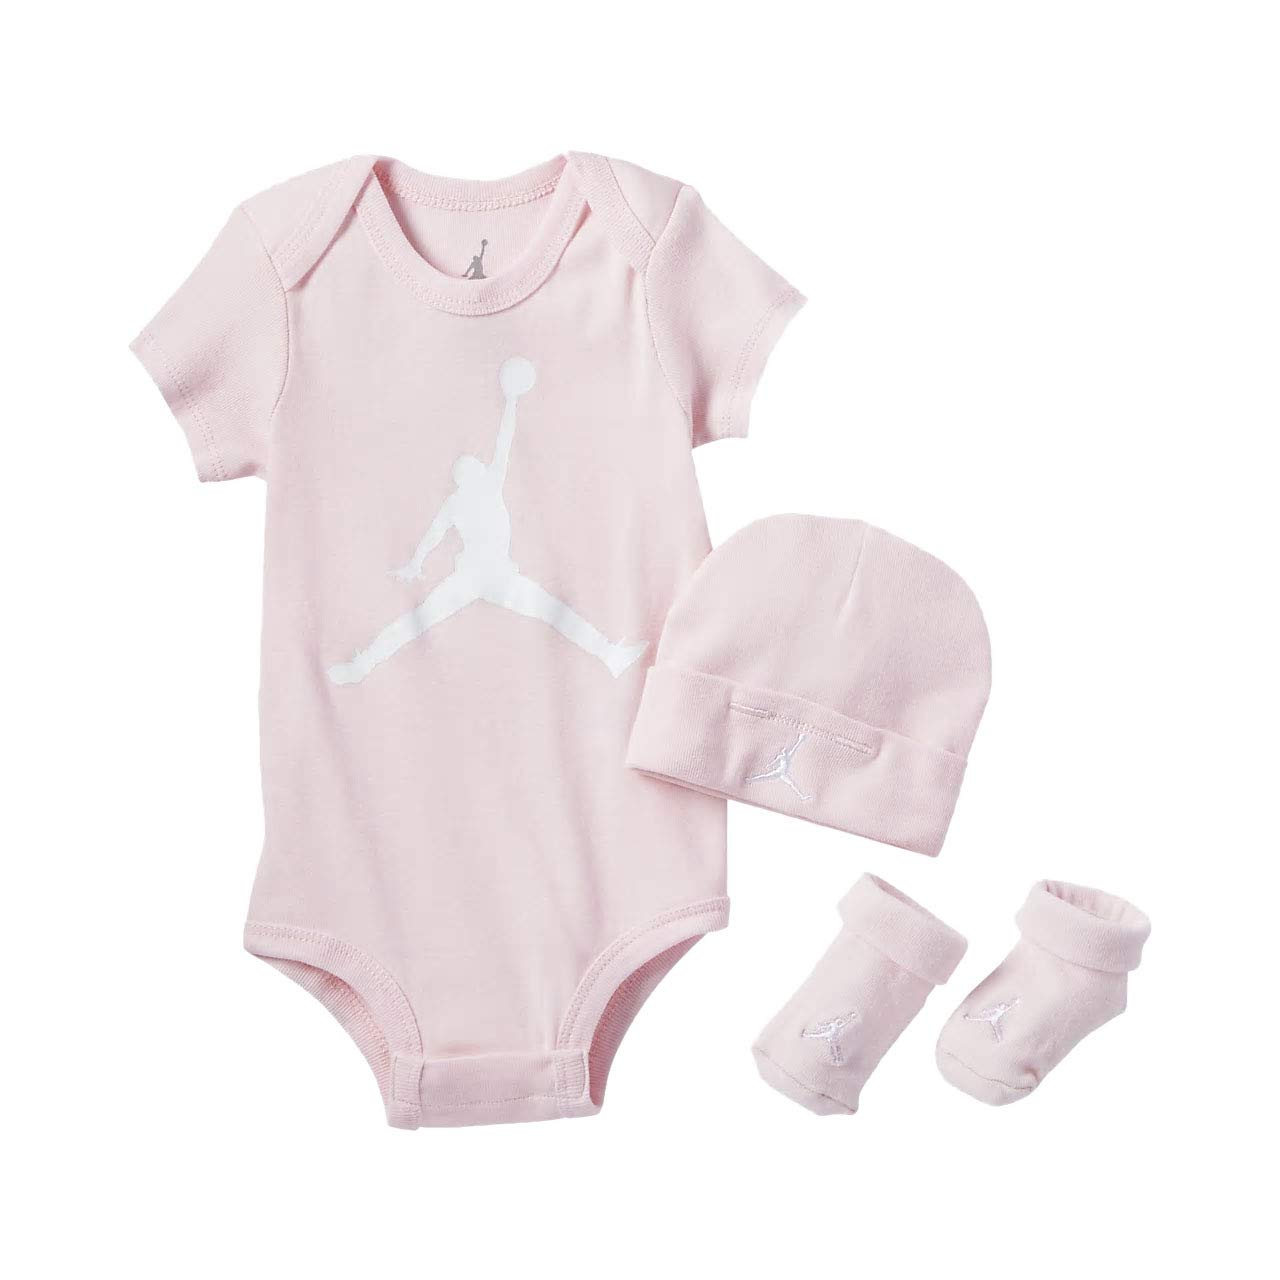 Jordan Infant Jumpman 3 Piece Set (Arctic Pink(LJ0041-A31)/White, 0-6 Months) by Nike